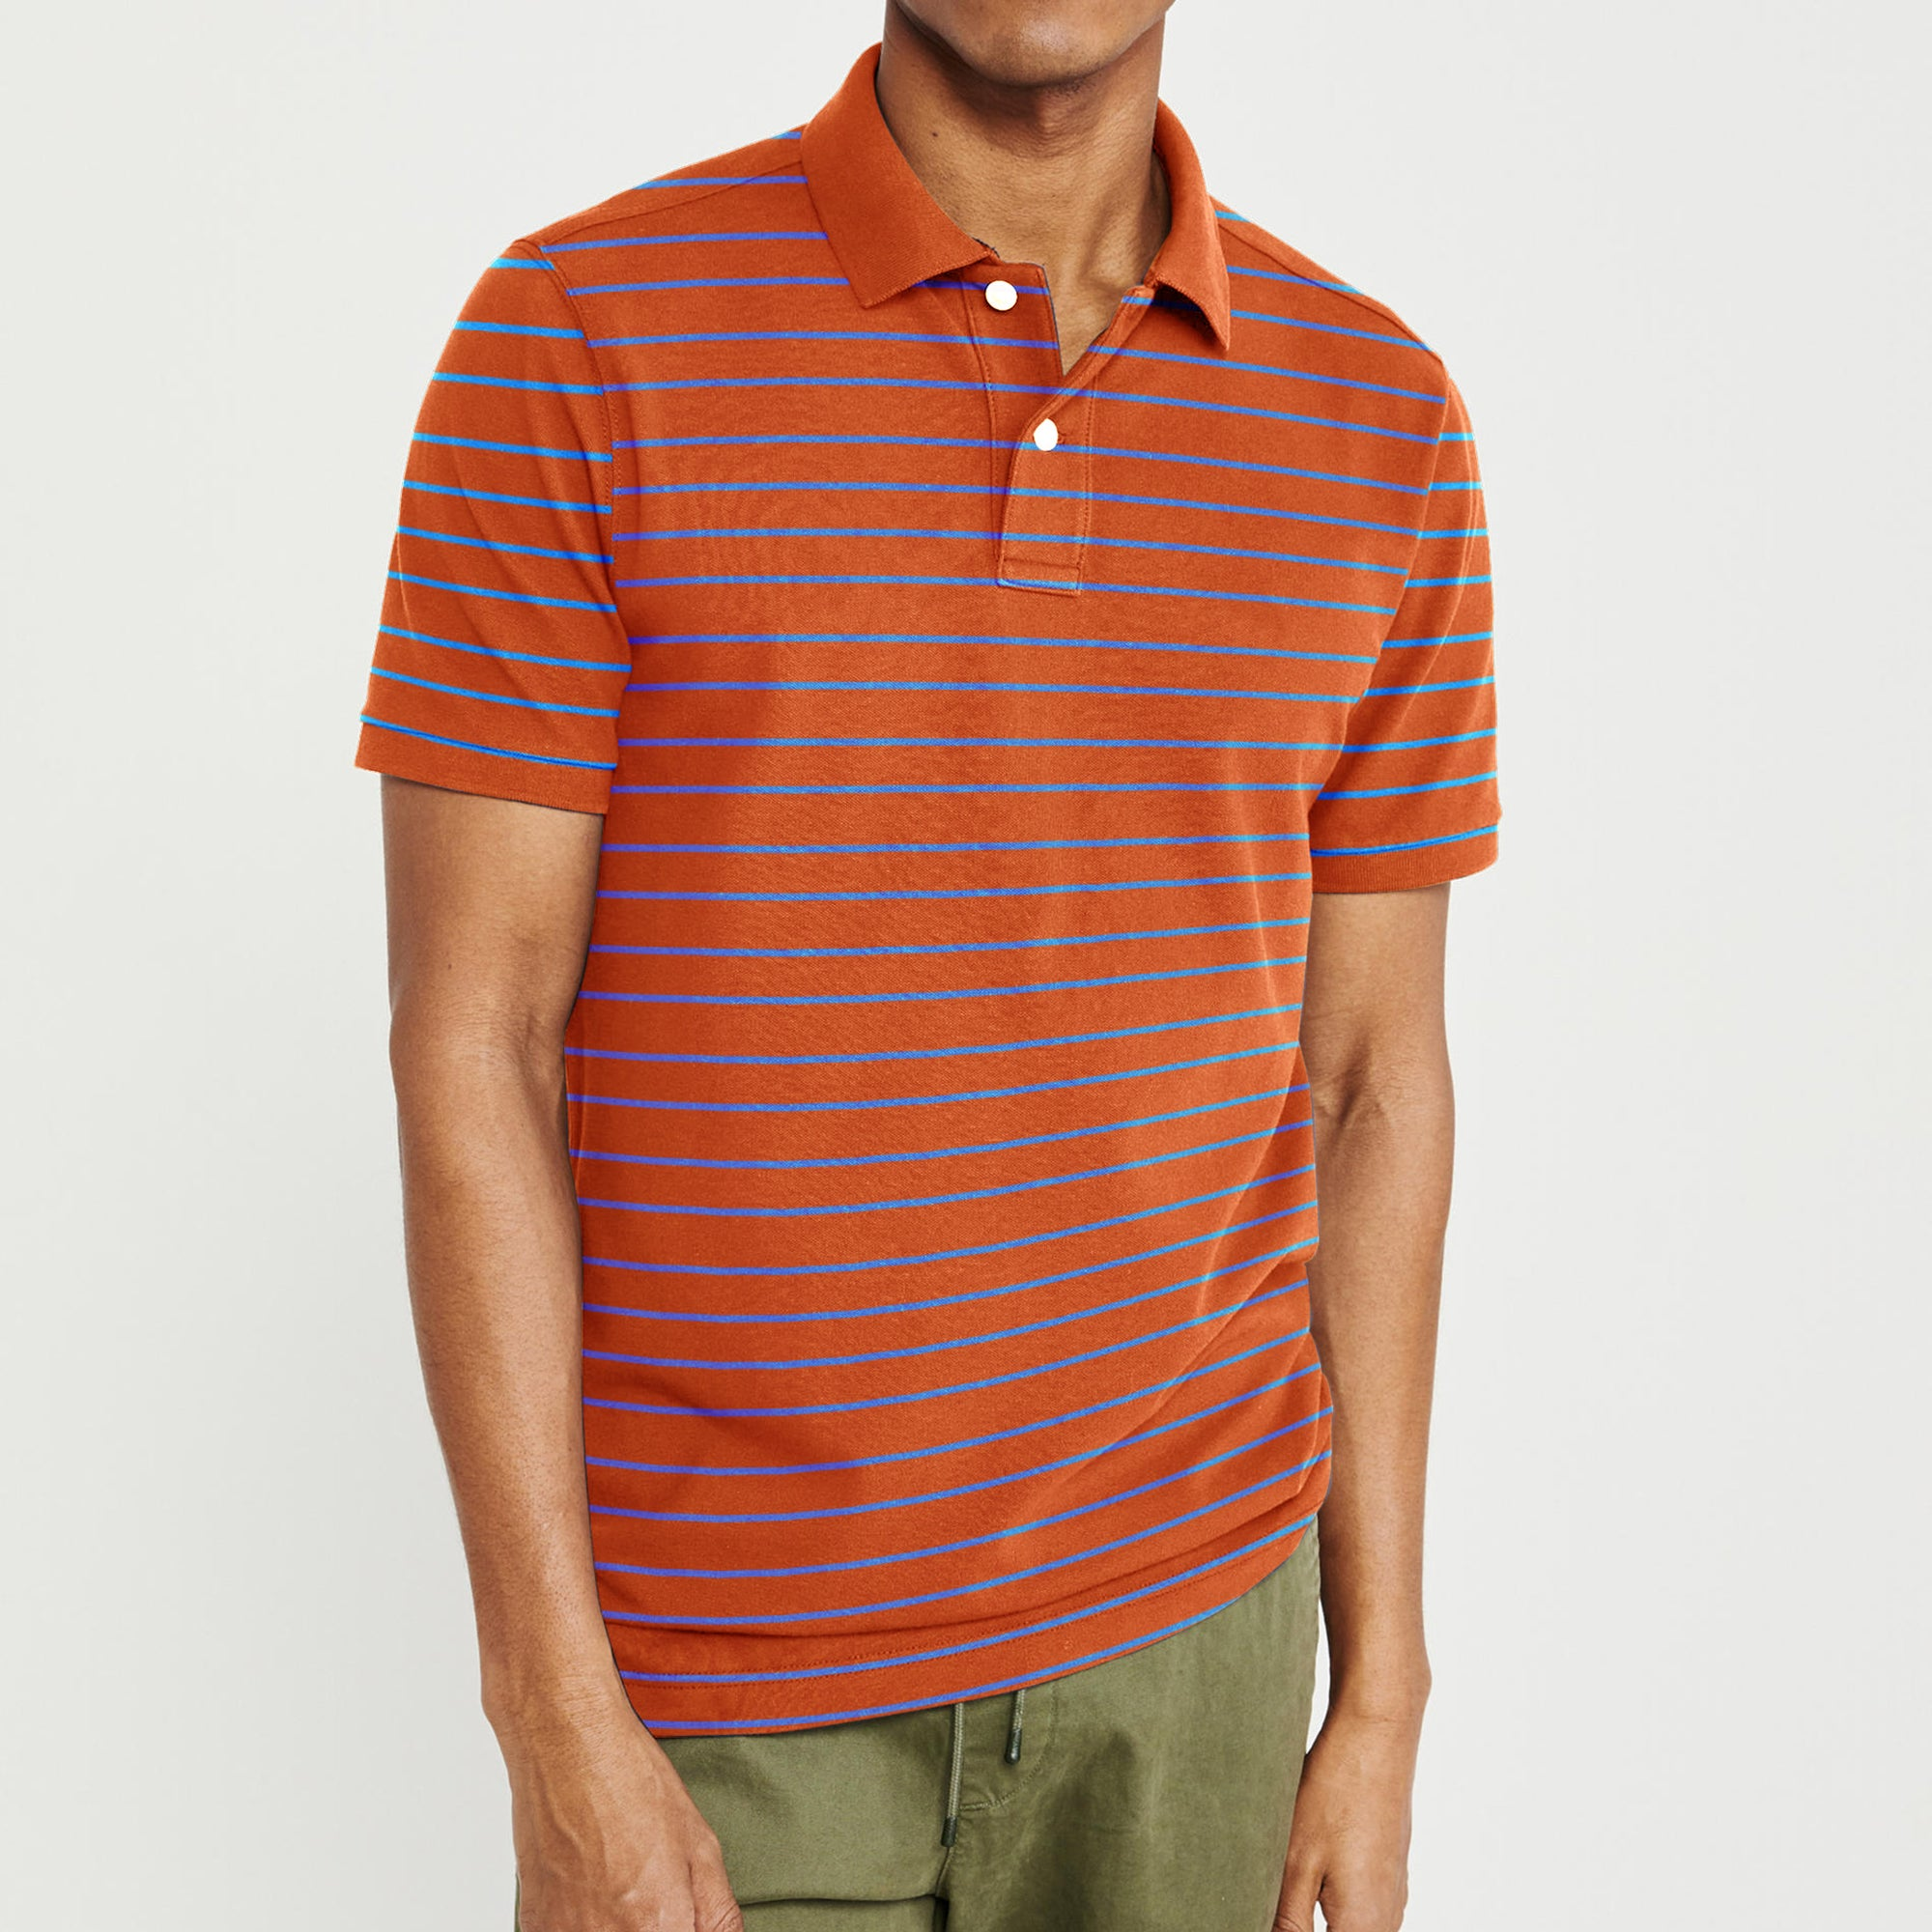 The Modern Short Sleeve P.Q Polo Shirt For Men-Orange & Sky Stripe-BE8400